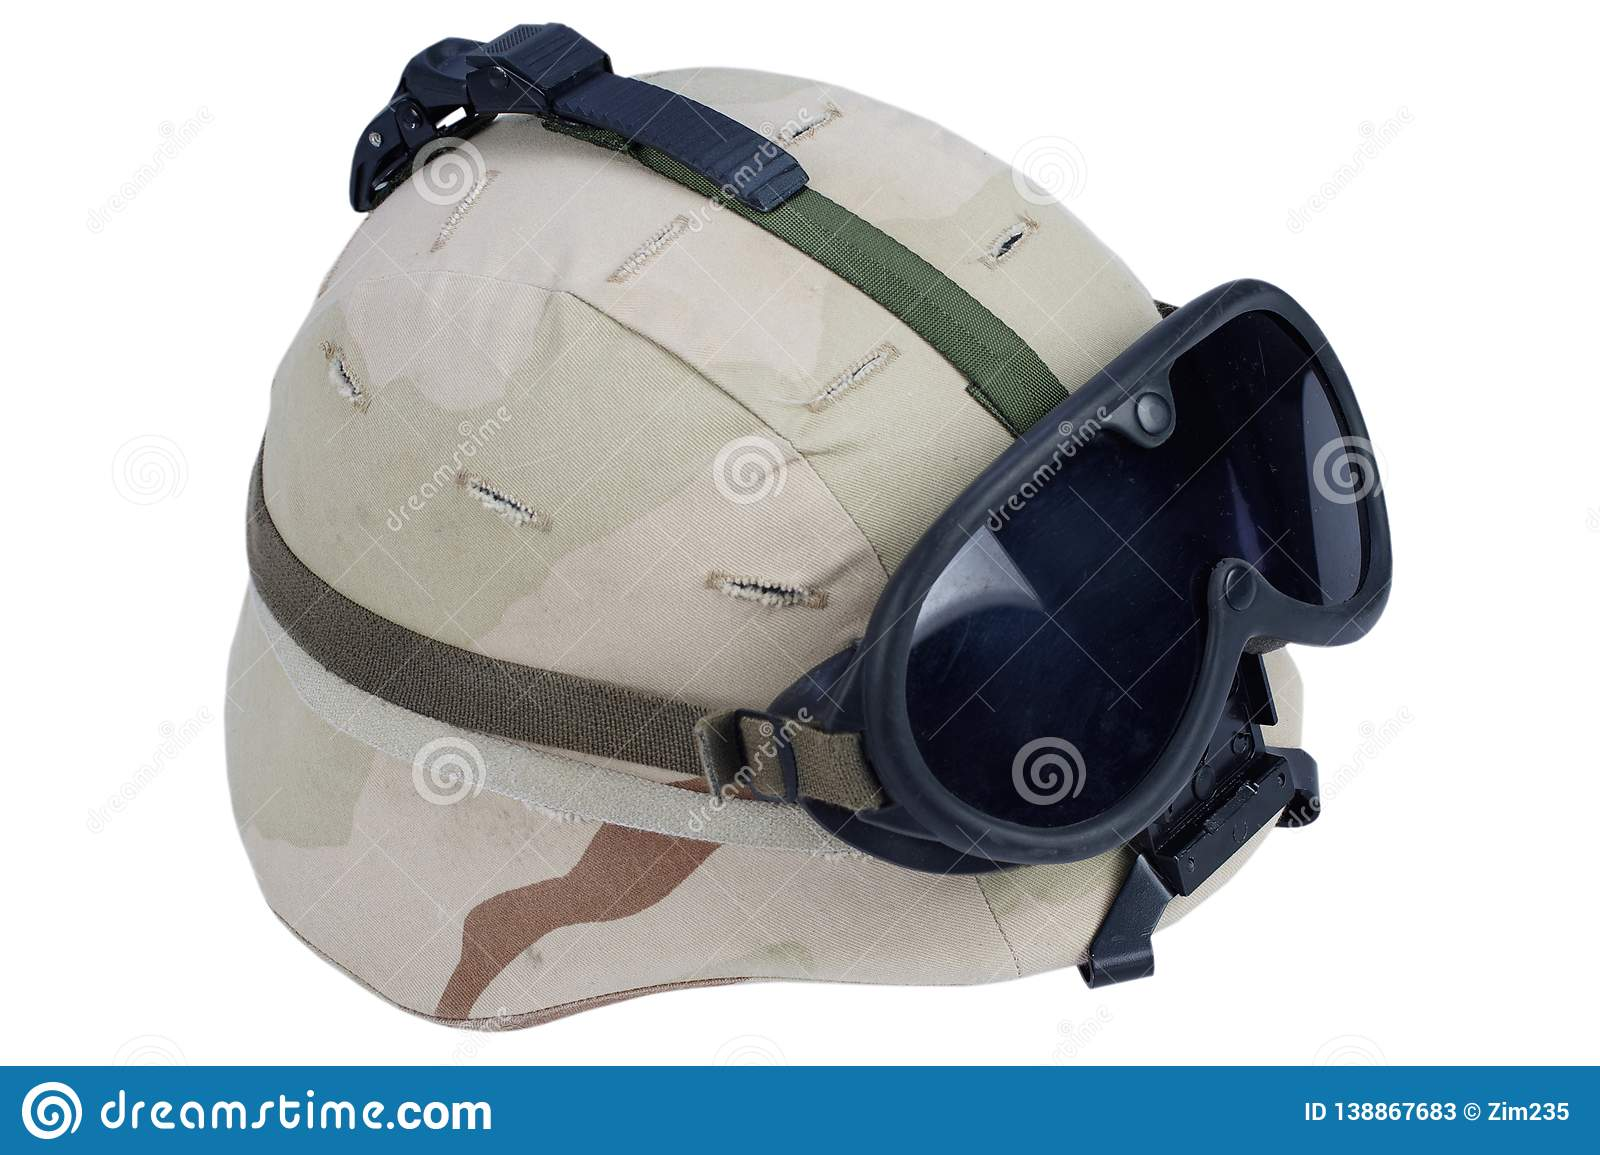 f3082a0ffe330b US army kevlar helmet with goggles, NVG mount and camouflage cover isolated  on white background. More similar stock images